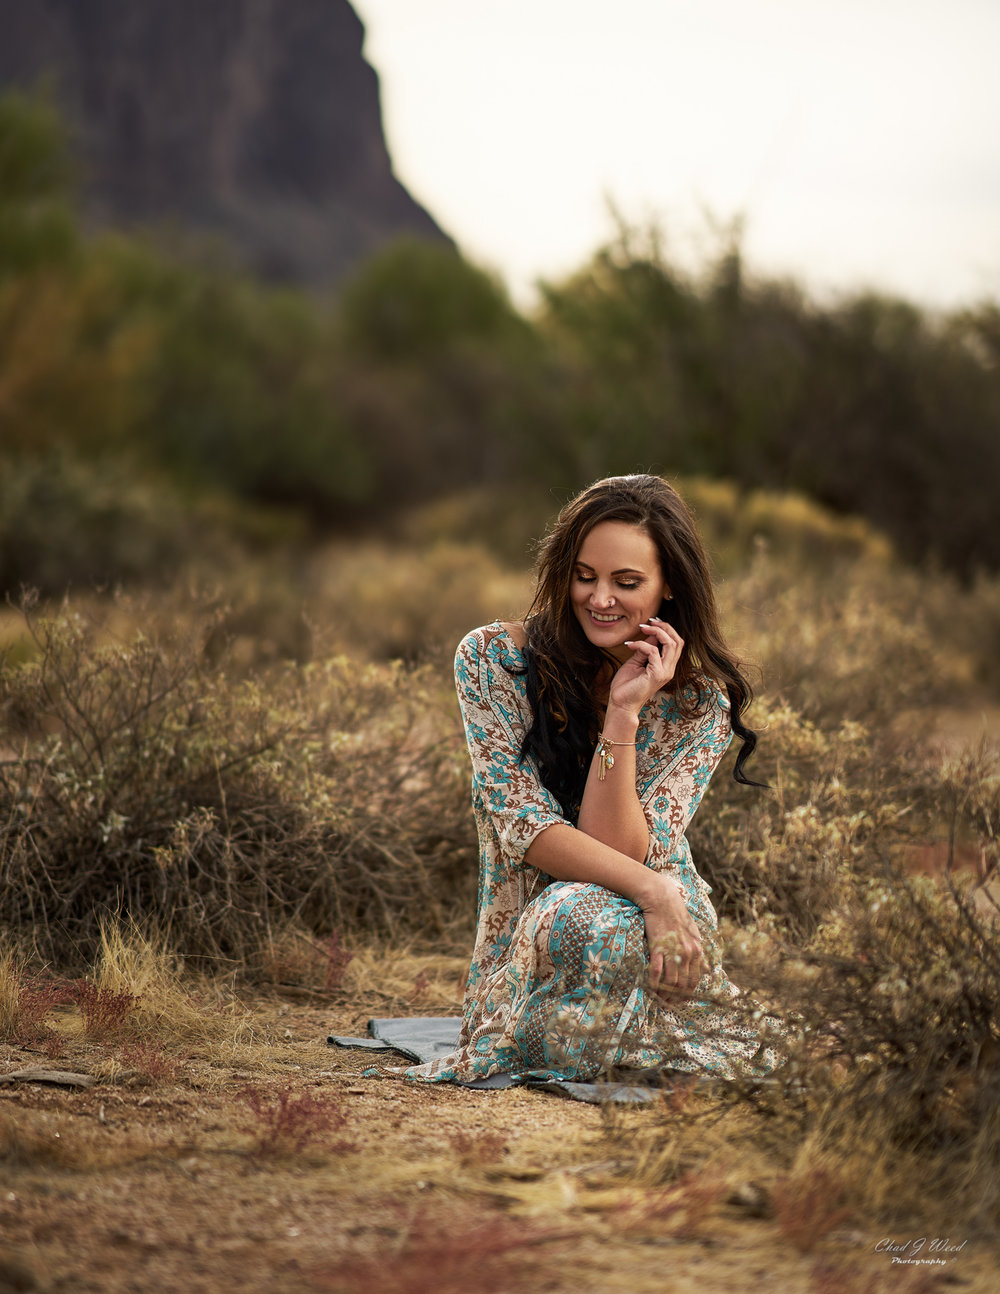 Erica's Editorial 3 at Superstition Mountains by Mesa Arizona Portrait Photographer Chad Weed